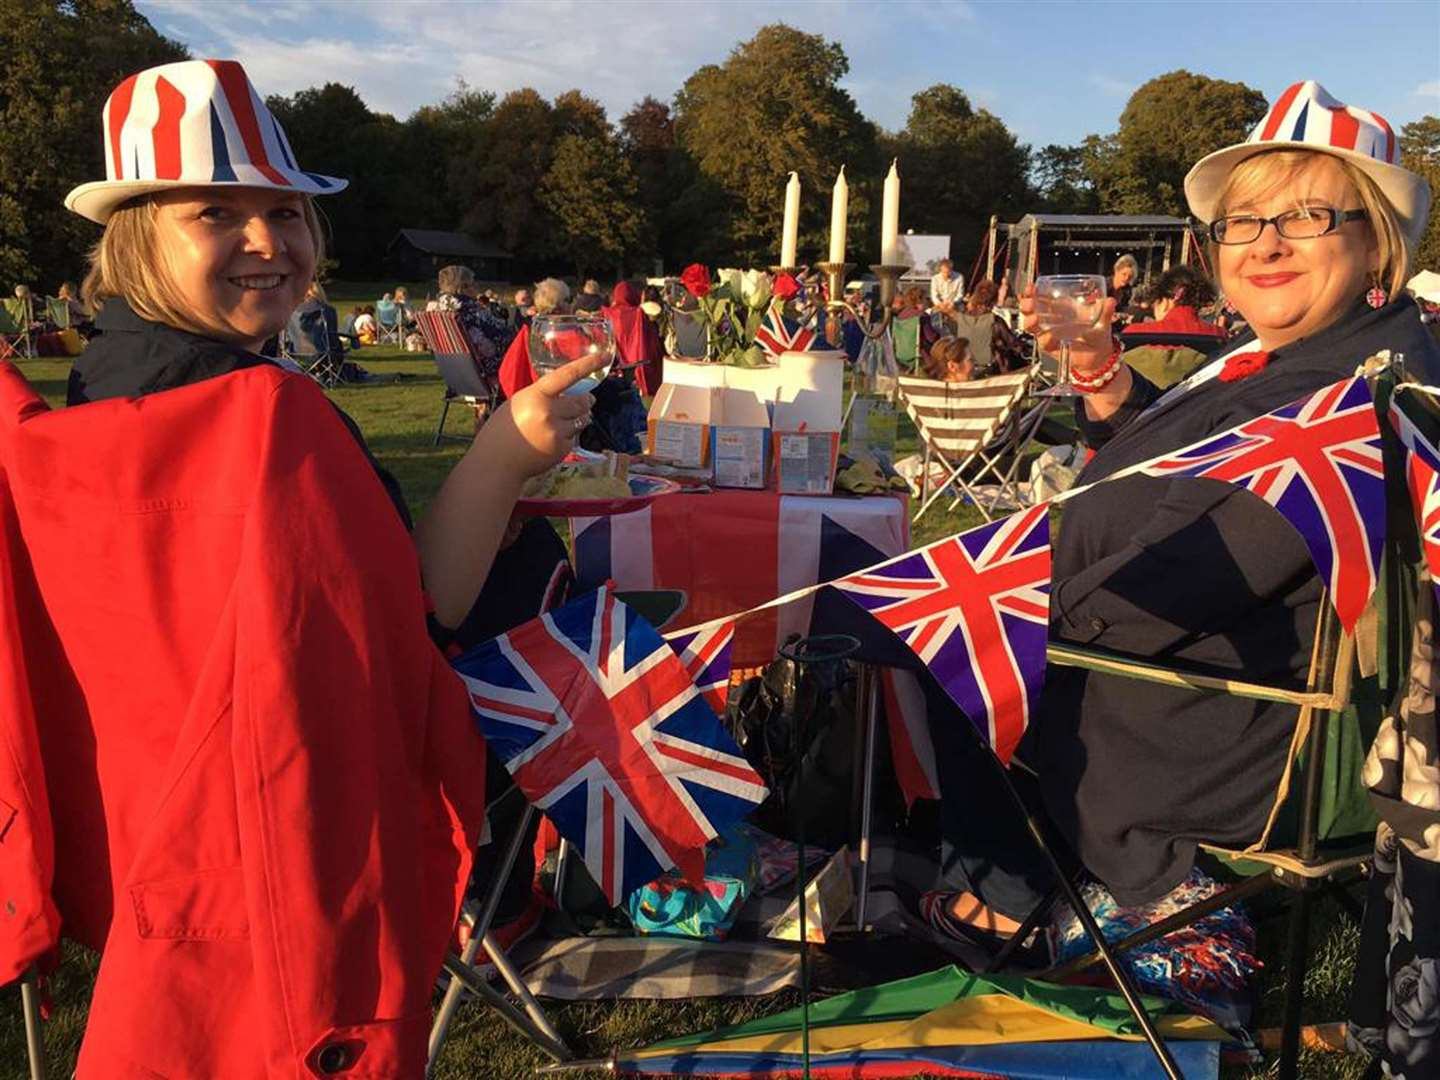 Open air proms wll return to Hole Park Gardens